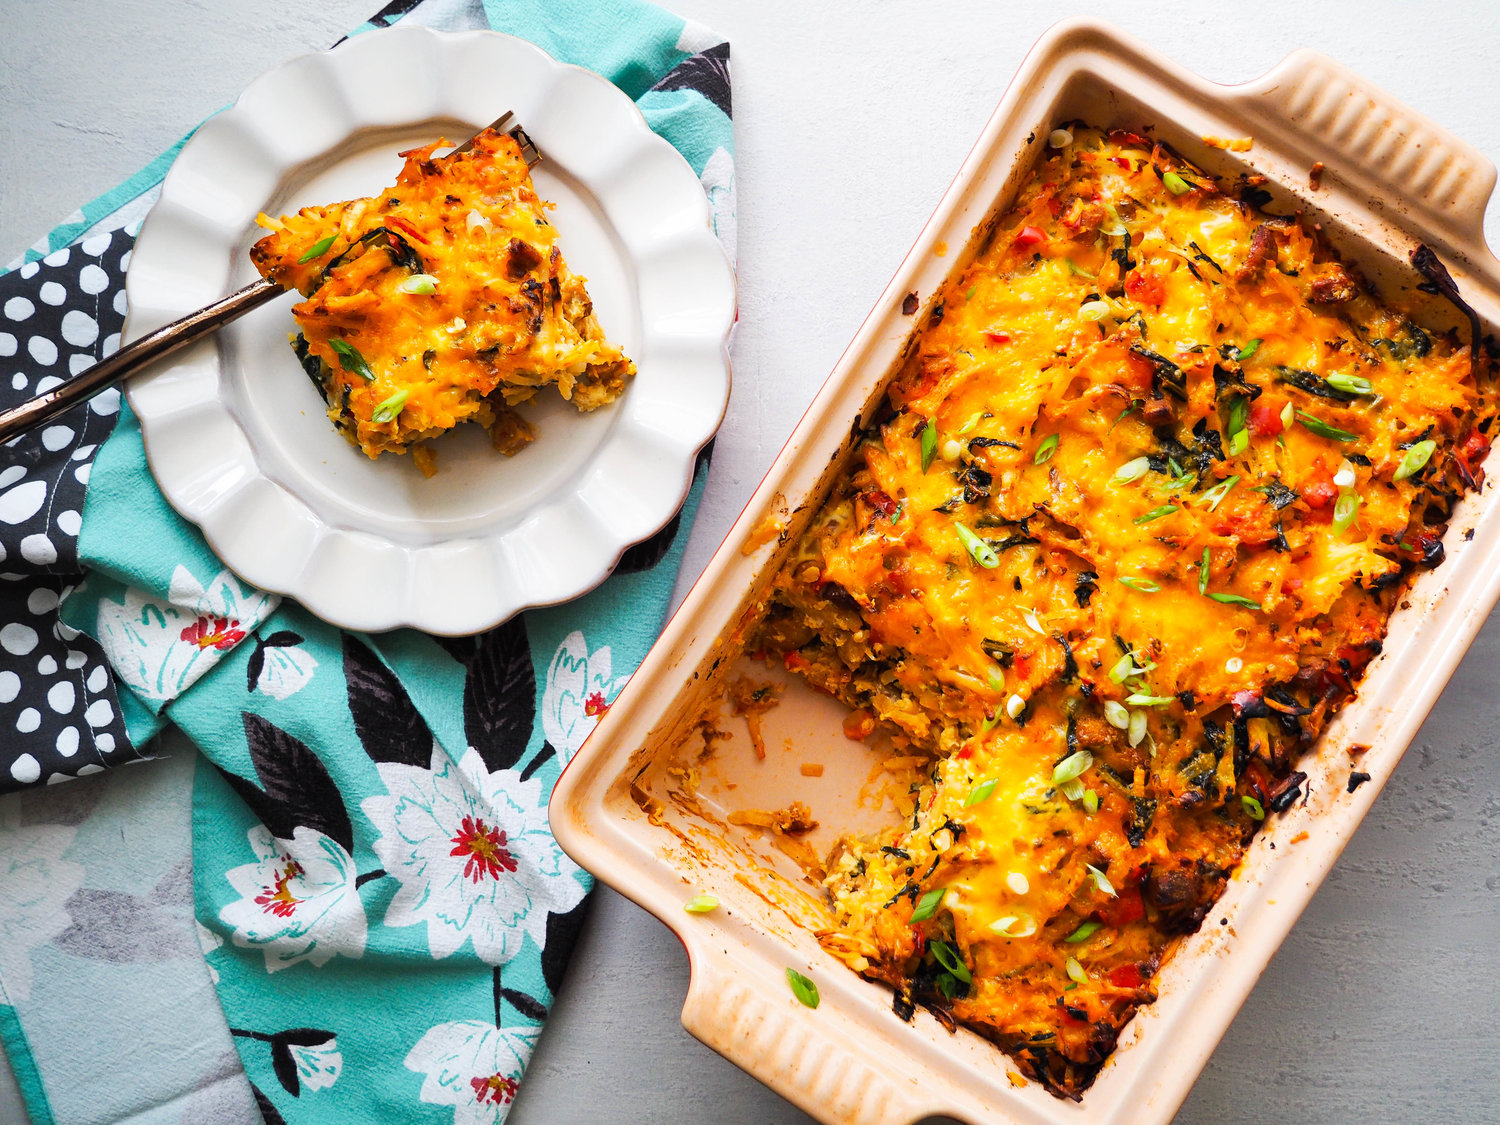 Hash Brown Breakfast Casserole with Peppers and Kale